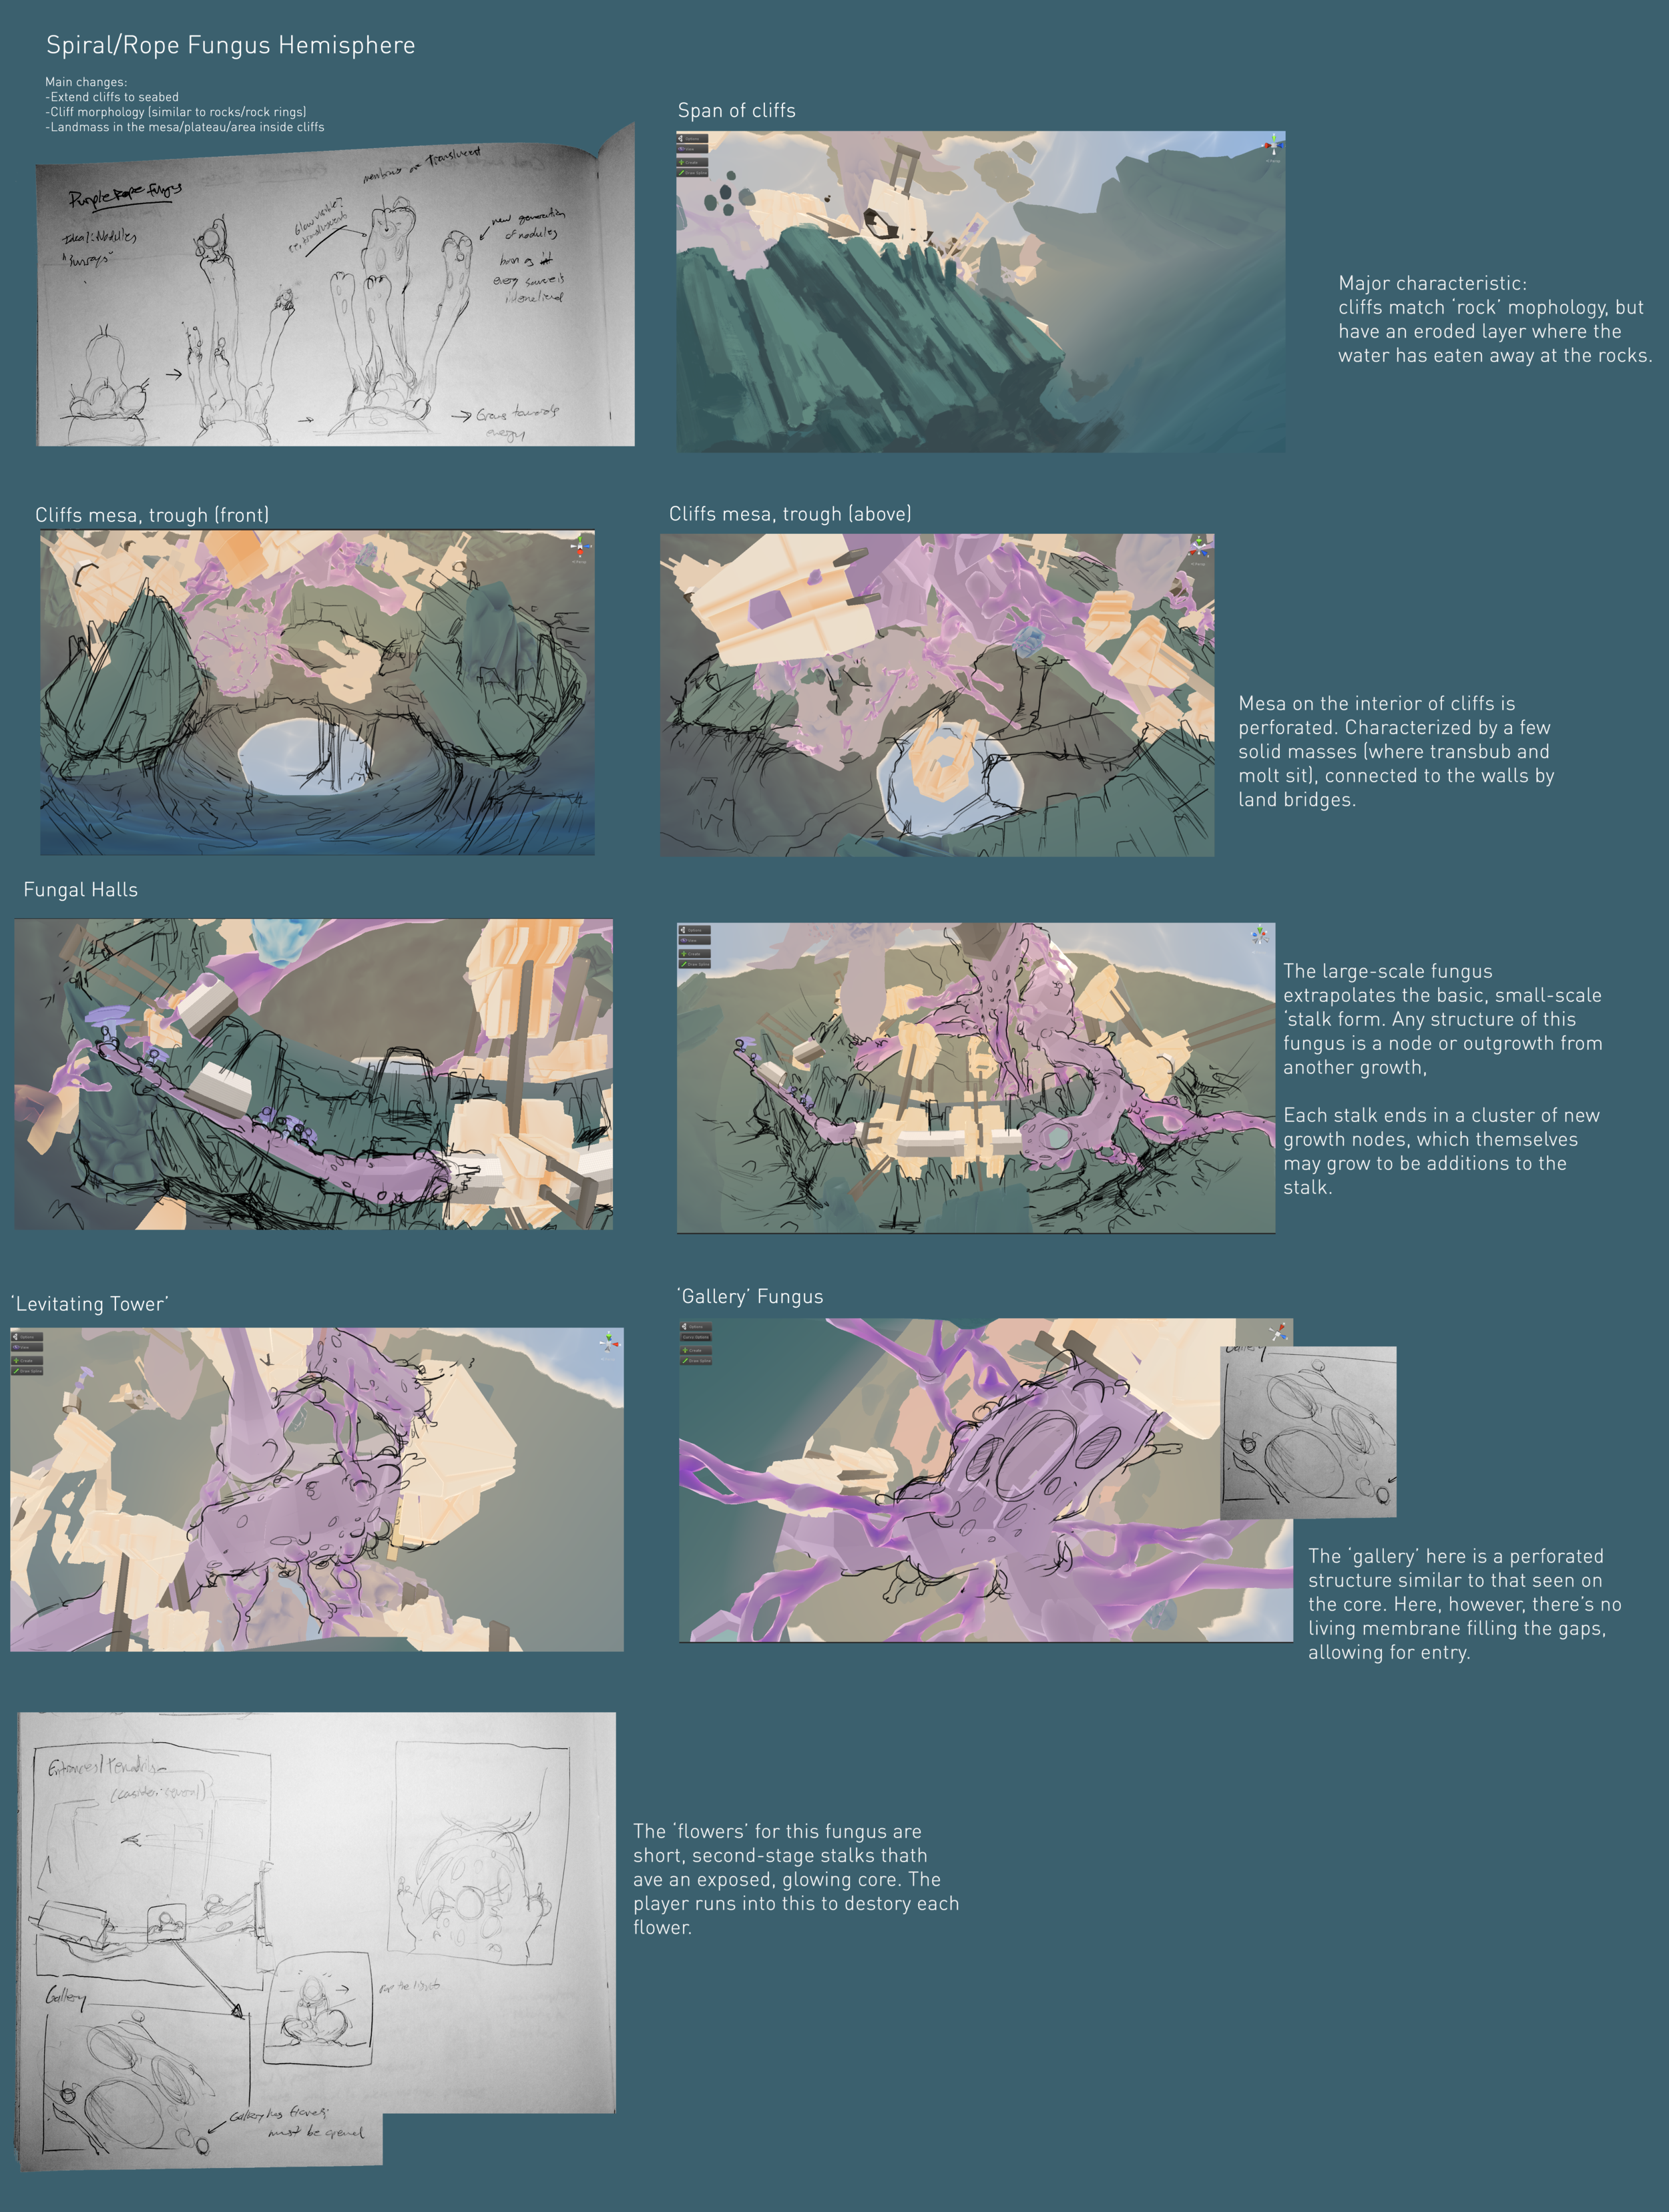 LandscapeDrawover_01.png